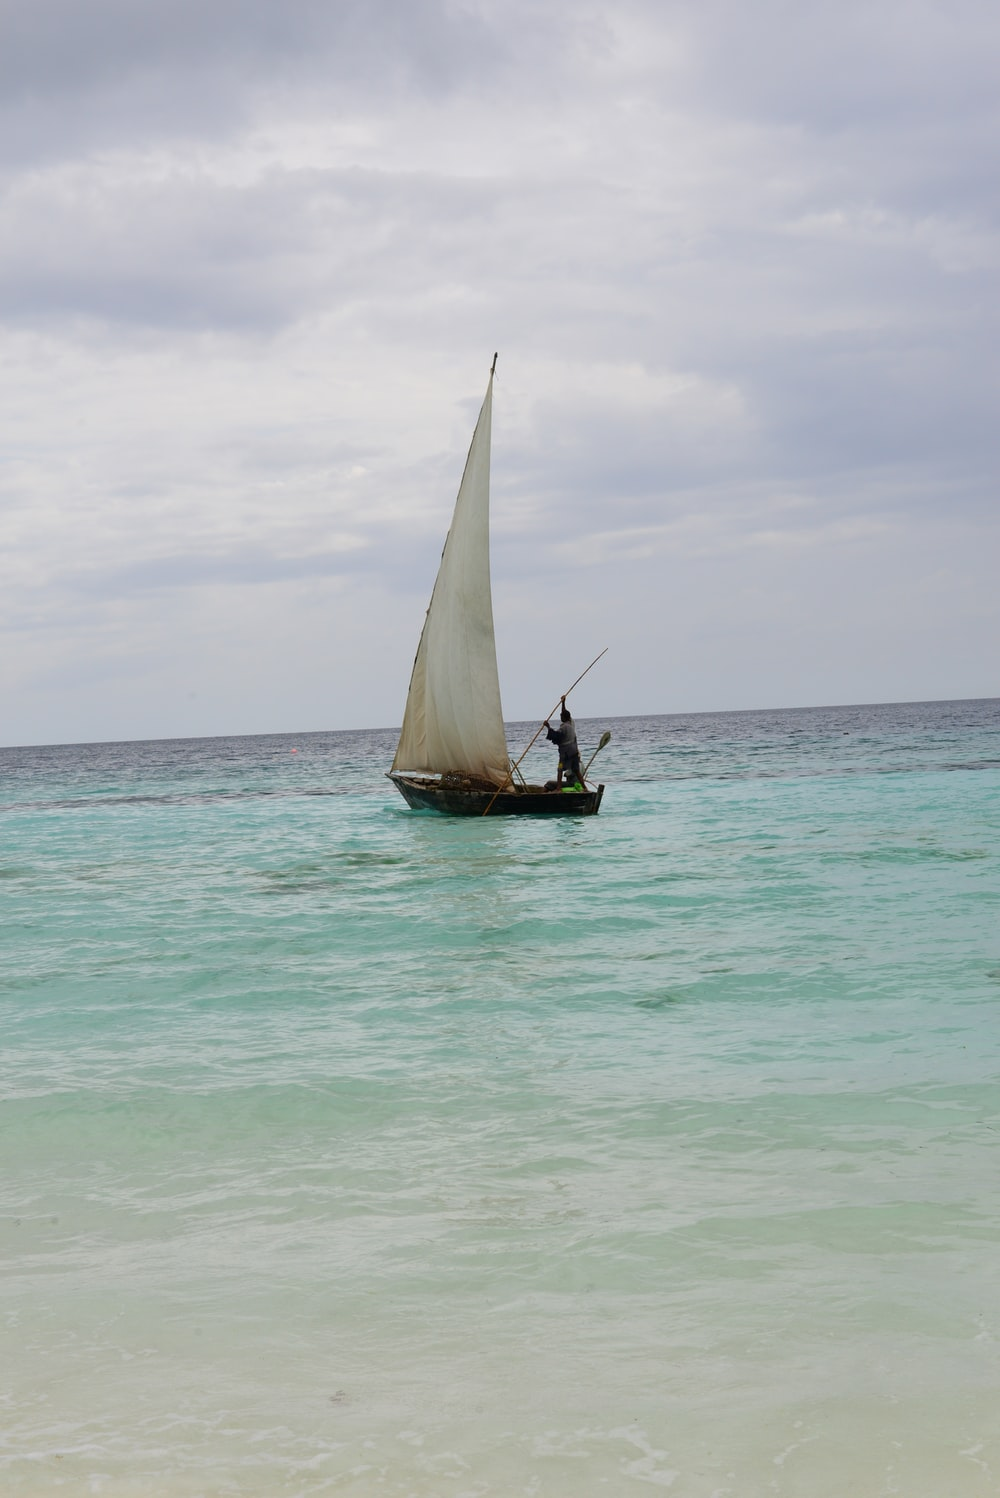 brown and white sail boat on sea during daytime